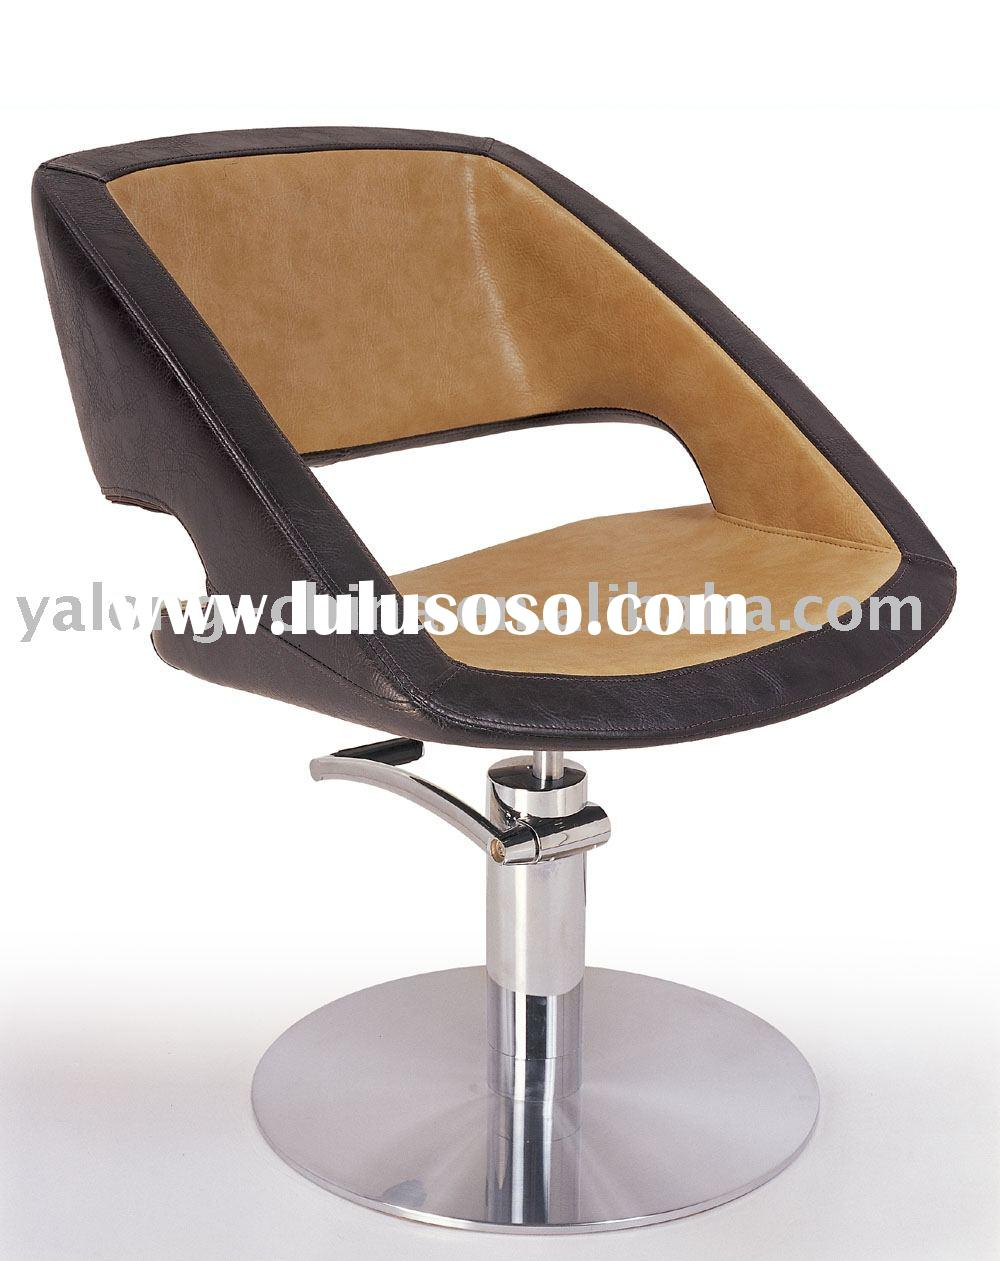 Y173-1 Barber chair